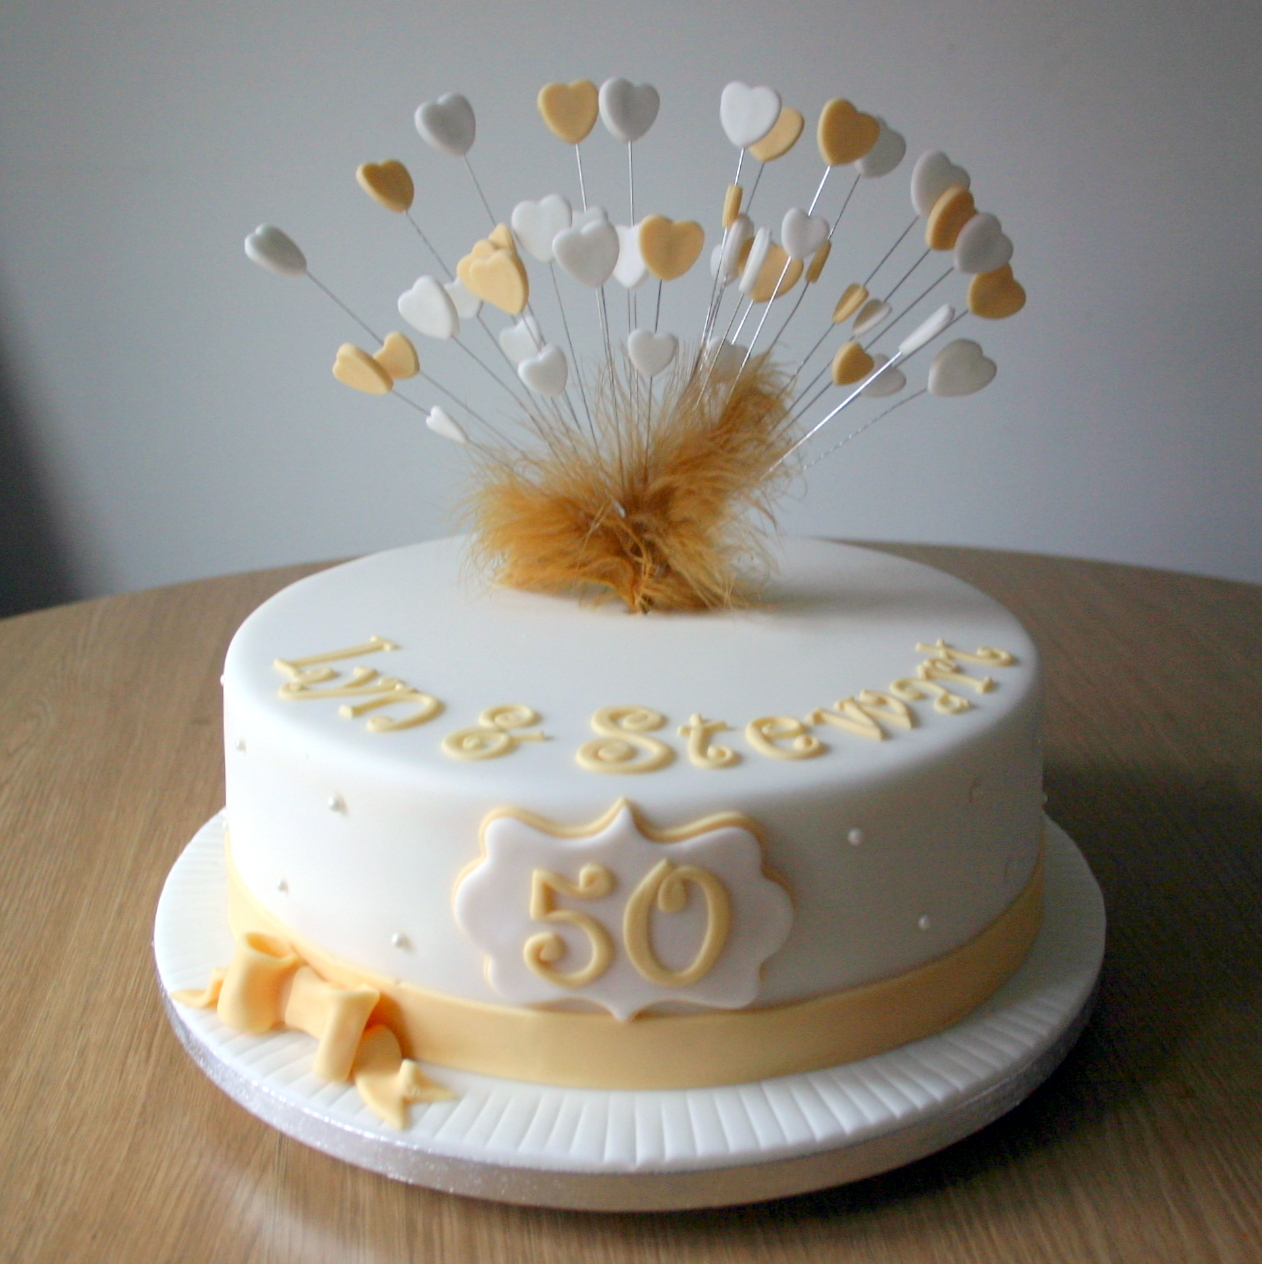 50th Anniversary Cakes That Are So Adorable For Your